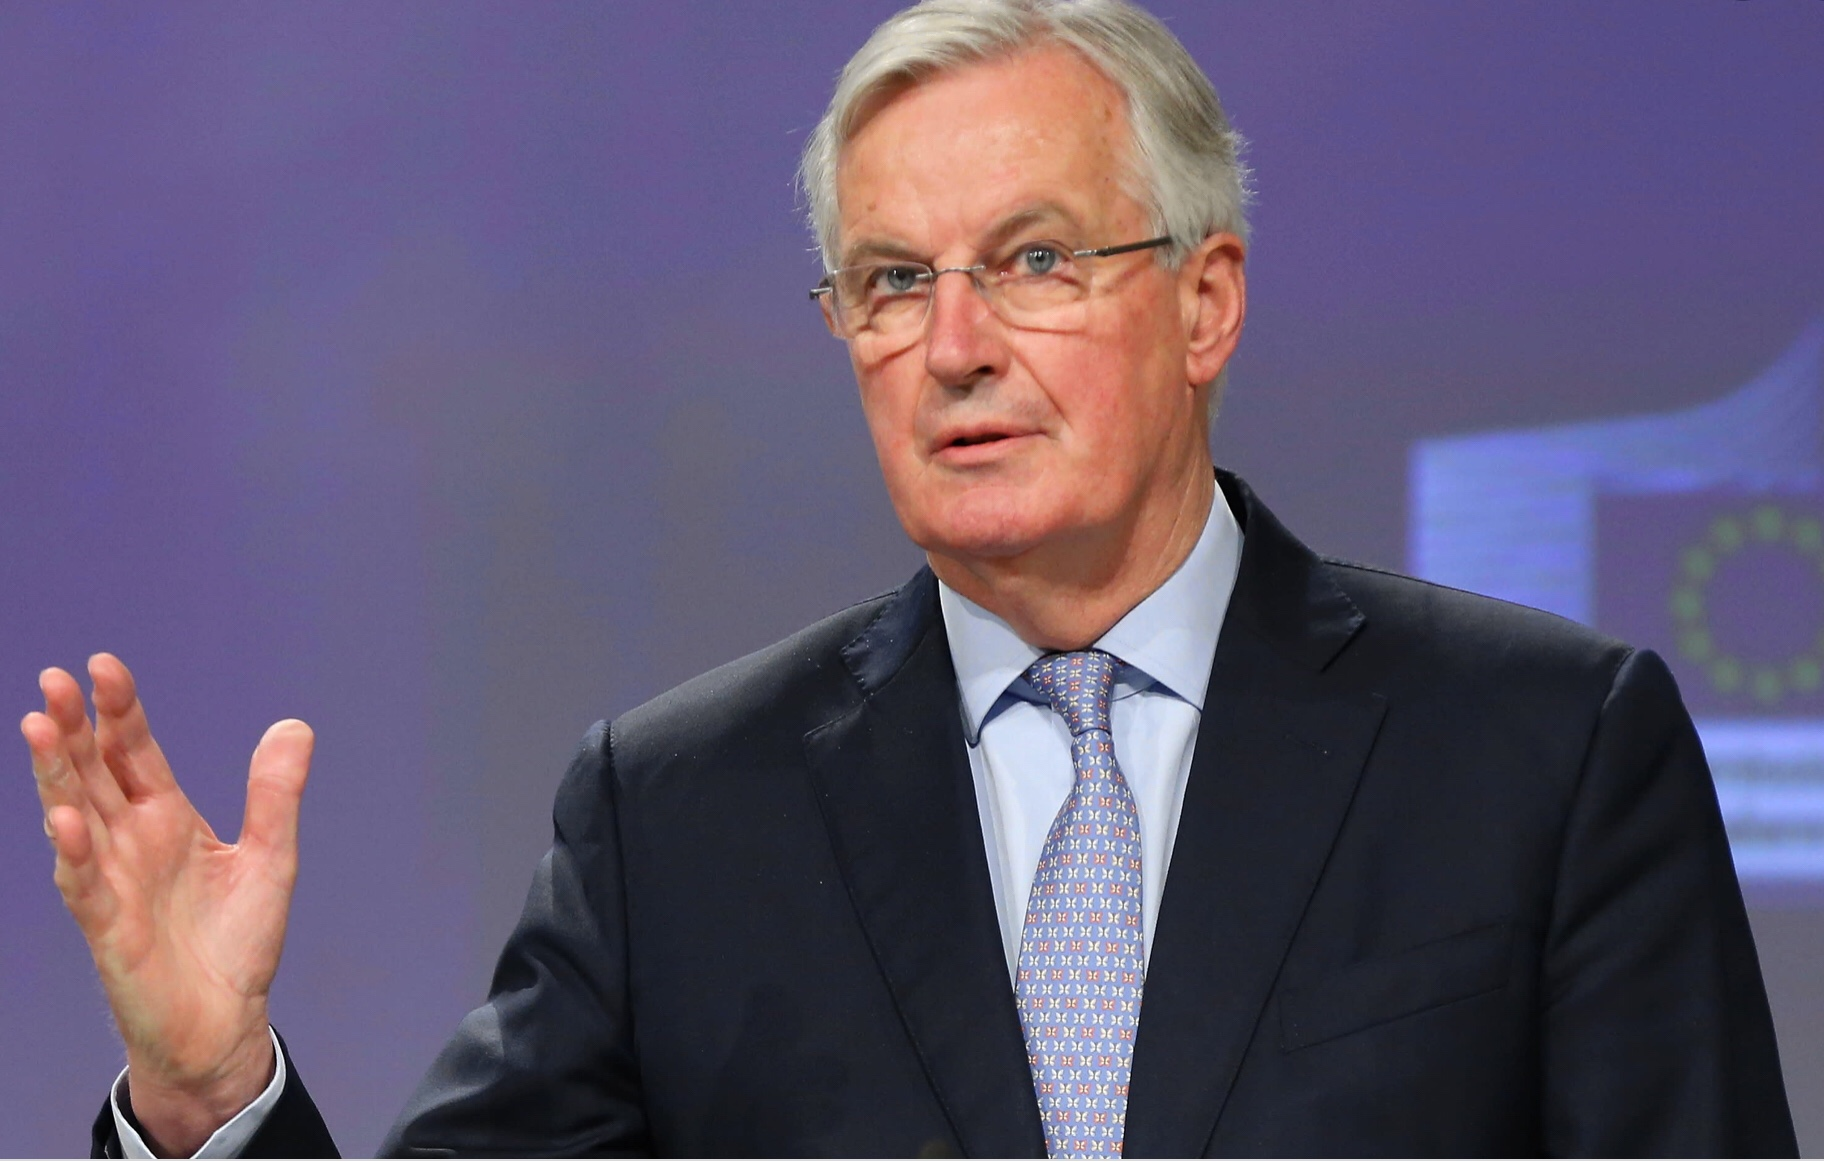 Barnier laments lack of progress.